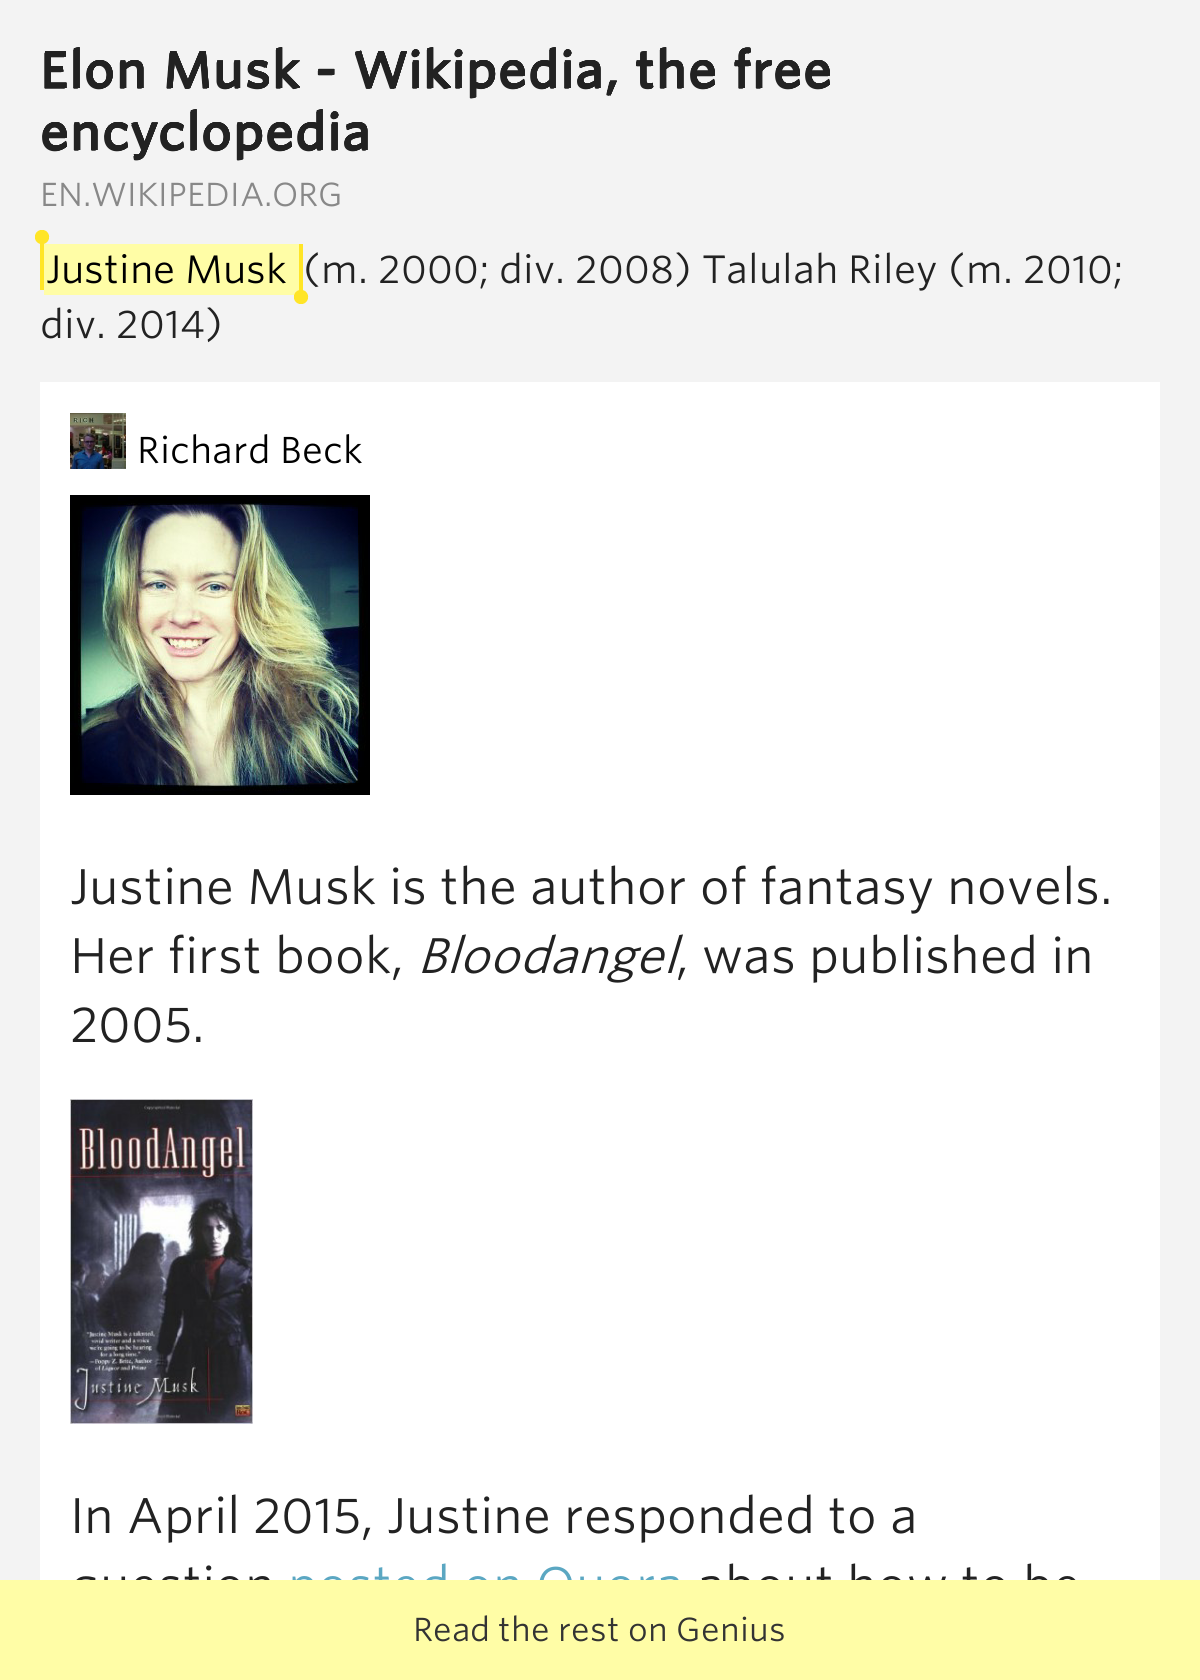 Justine musk wikipedia the free encyclopedia download for The free wikipedia